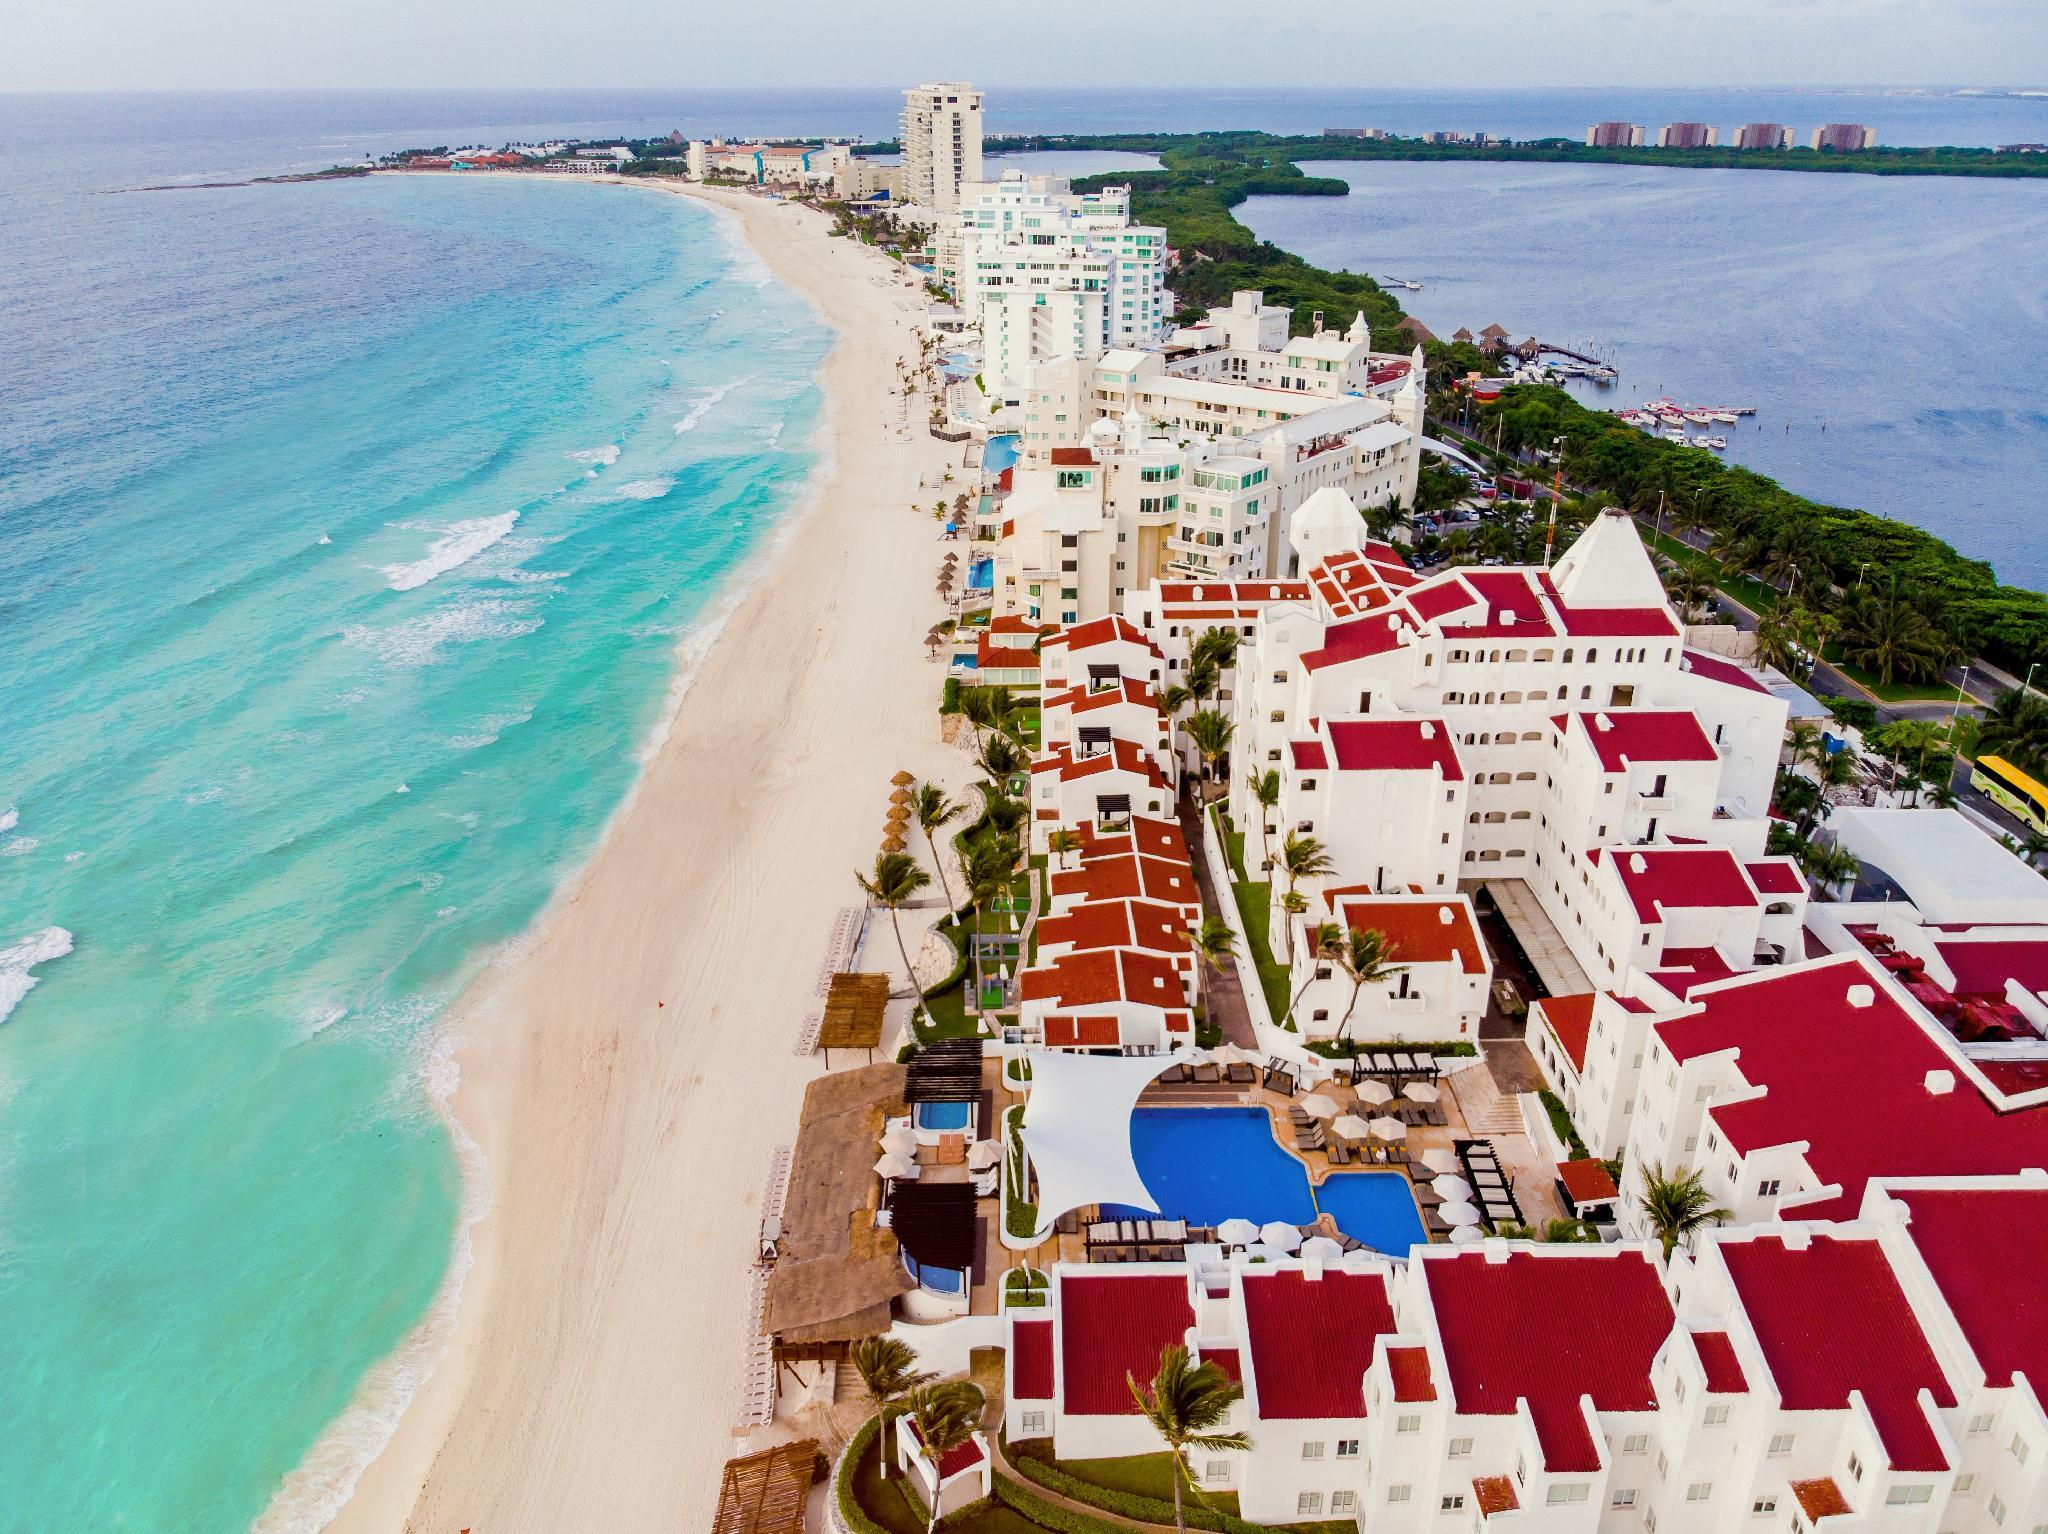 All Inclusive Resort Gr Caribe By Solaris Deluxe All Inclusive Resort In Cancun Room